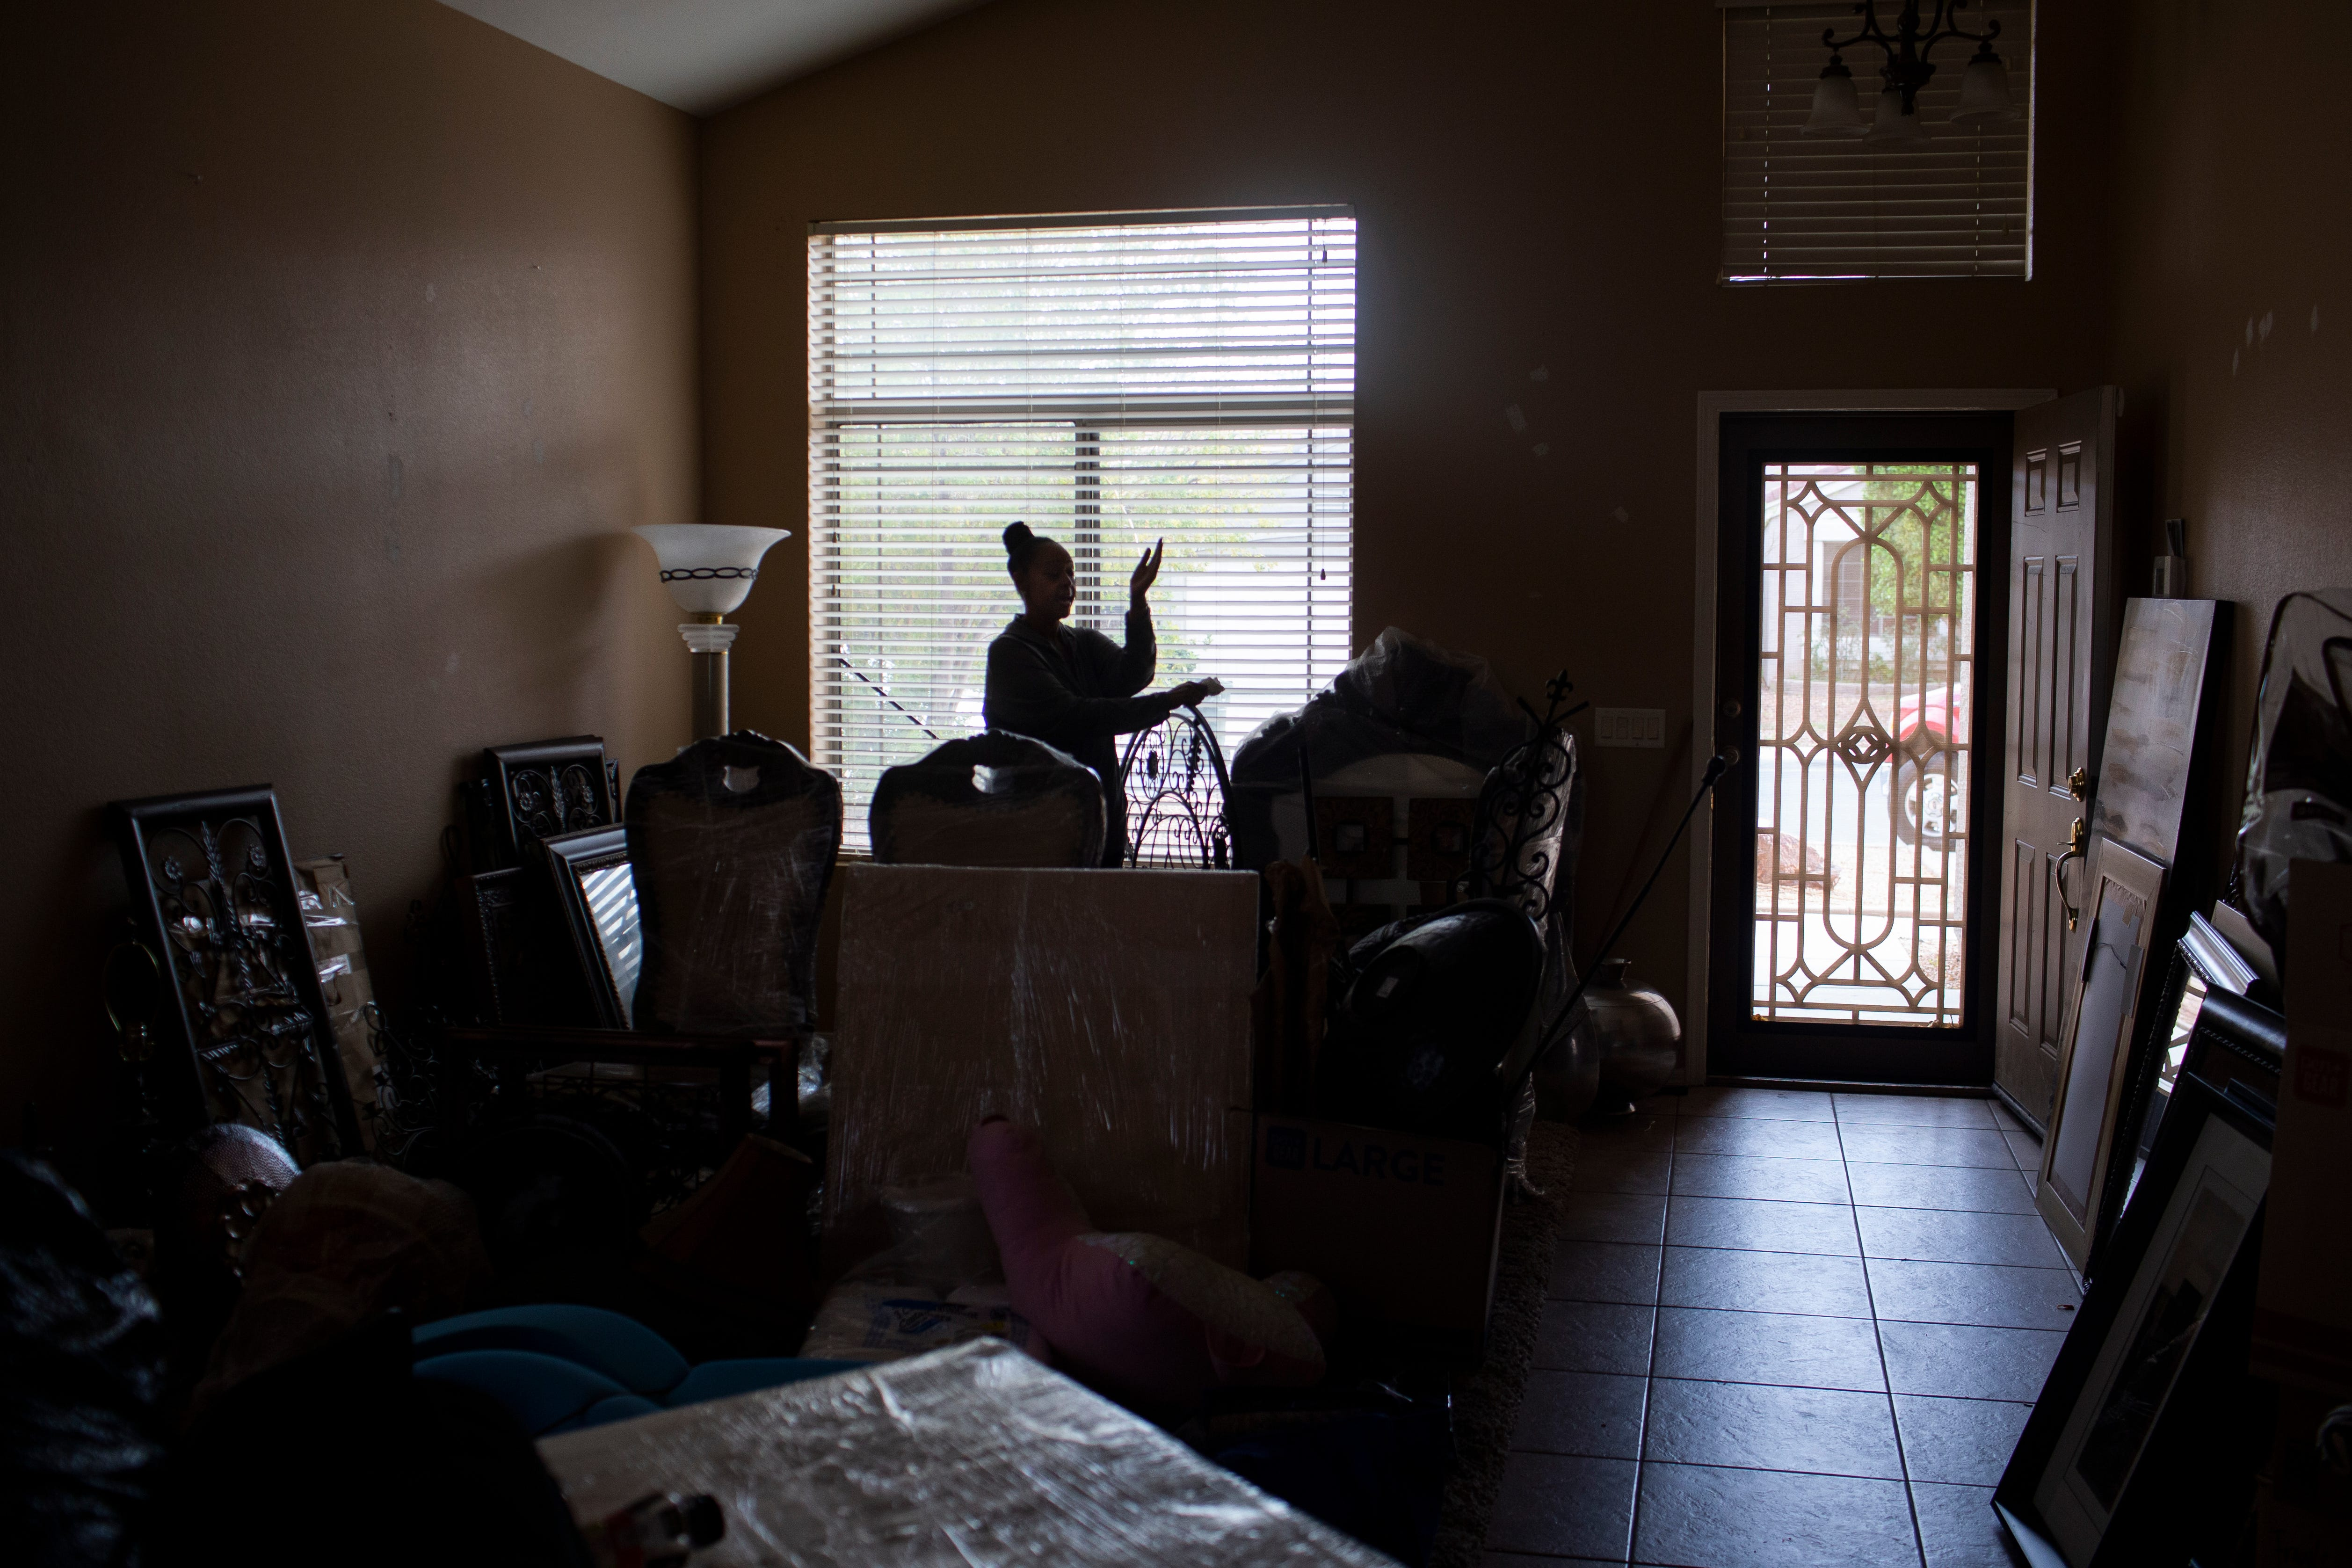 Sylvia Haysbert-Stevens stands inside her living room and packs her belongings that sheÕs preparing for a storage unit since she has been evicted from the home she was renting in El Mirage, Ariz. on Mar. 11, 2021. Despite a moratorium preventing landlords from evicting tenants during the COVID-19 pandemic, a court ordered Stevens to vacate the El Mirage home she had been living in with her daughter and granddaughter.